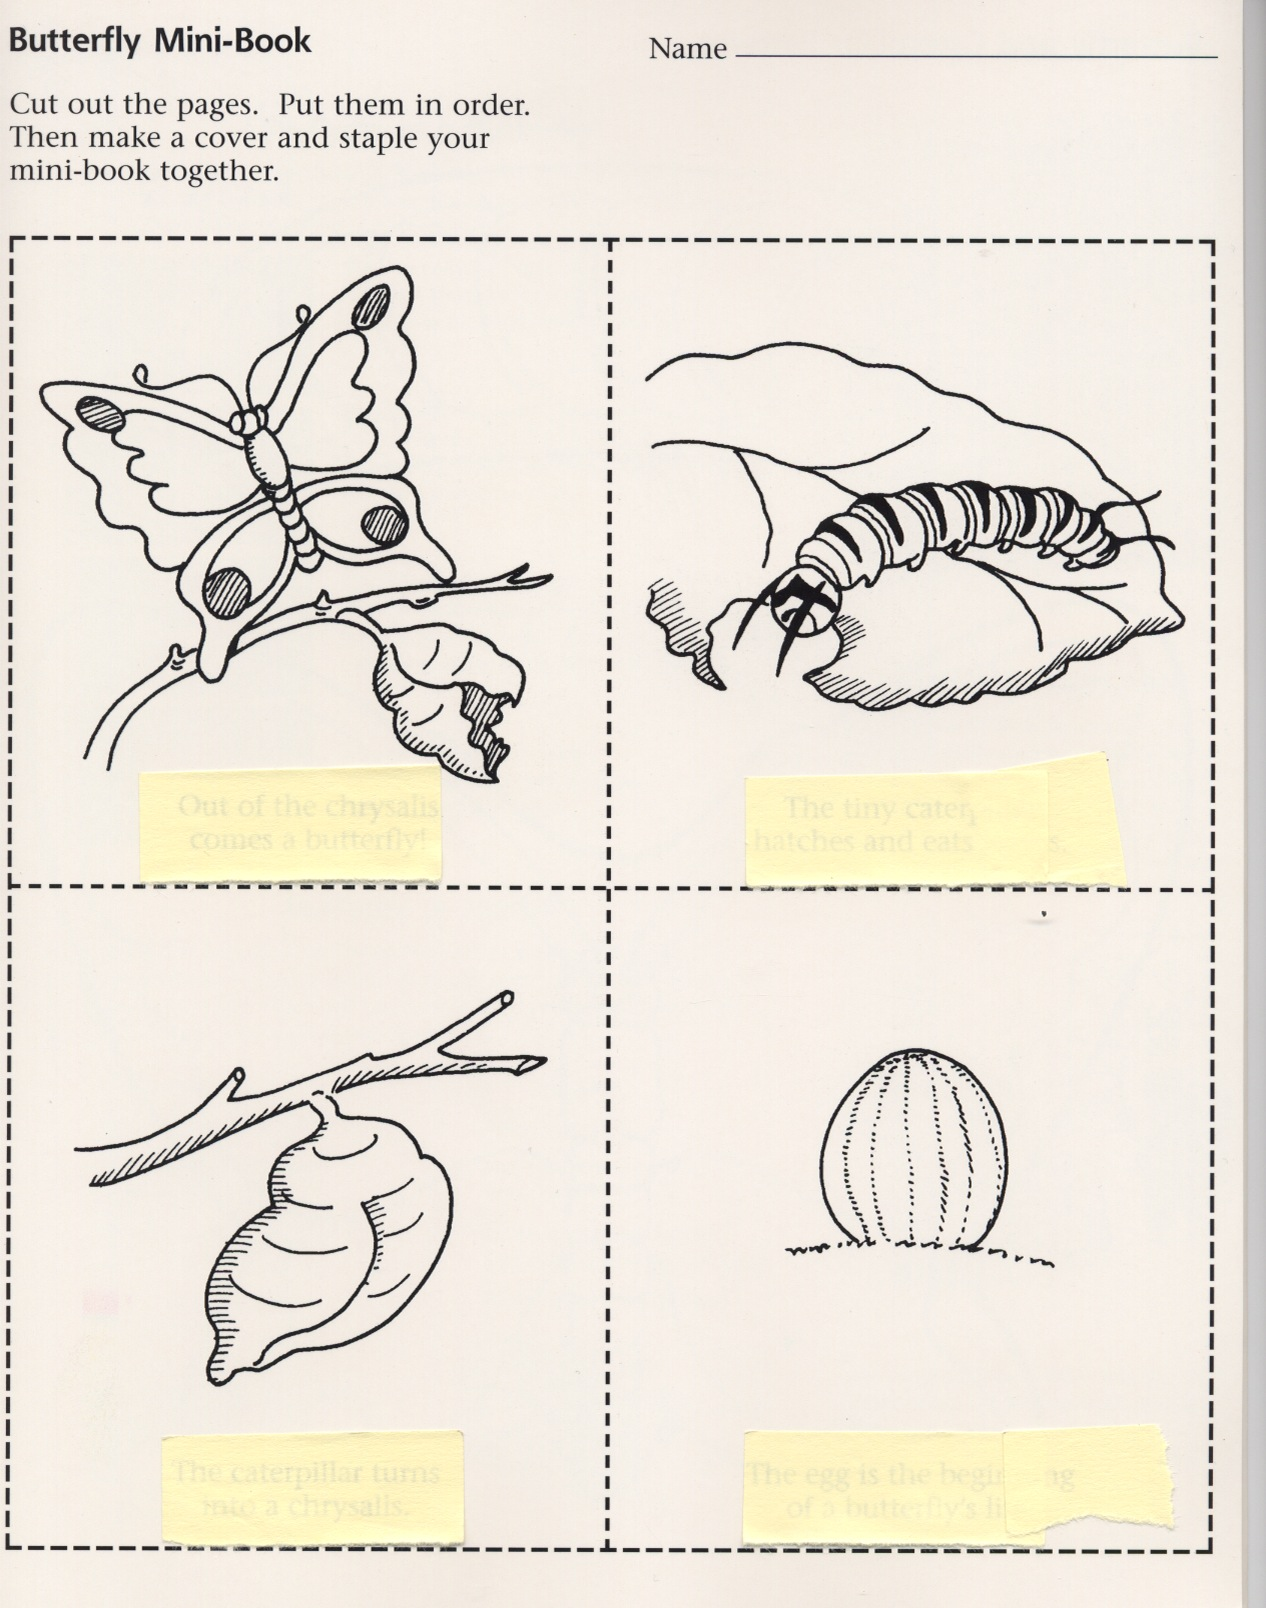 Coloring pages for life cycle of a butterfly - Students Have Become Acquainted With The Four Life Cycles Of The Butterfly At This Point They Will Be Asked To Demonstrate Their Understanding Of How There